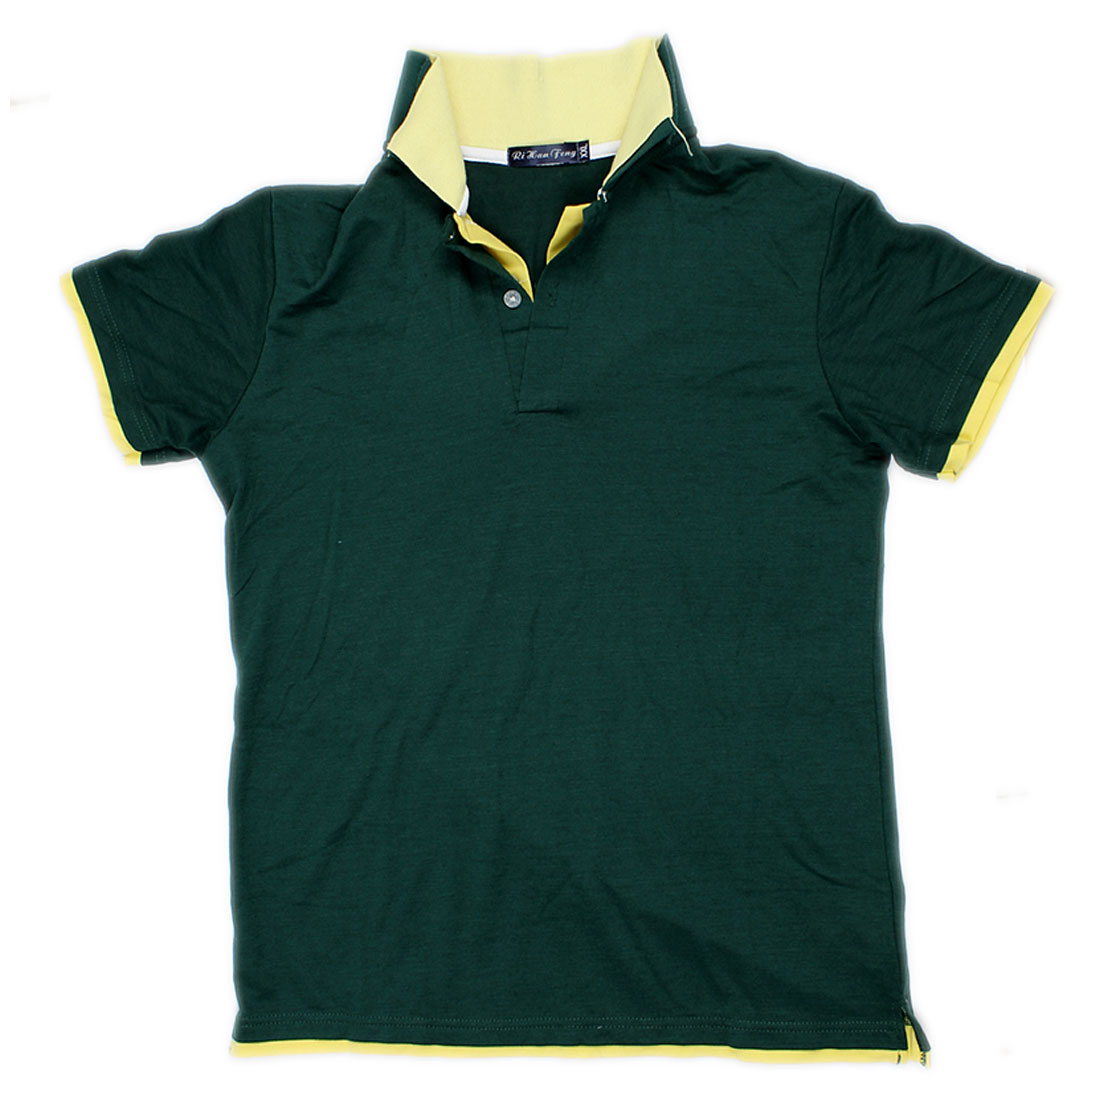 Yellow Green Fake 2 Piece Shirt Top Casual Summer Polo Size S for Man